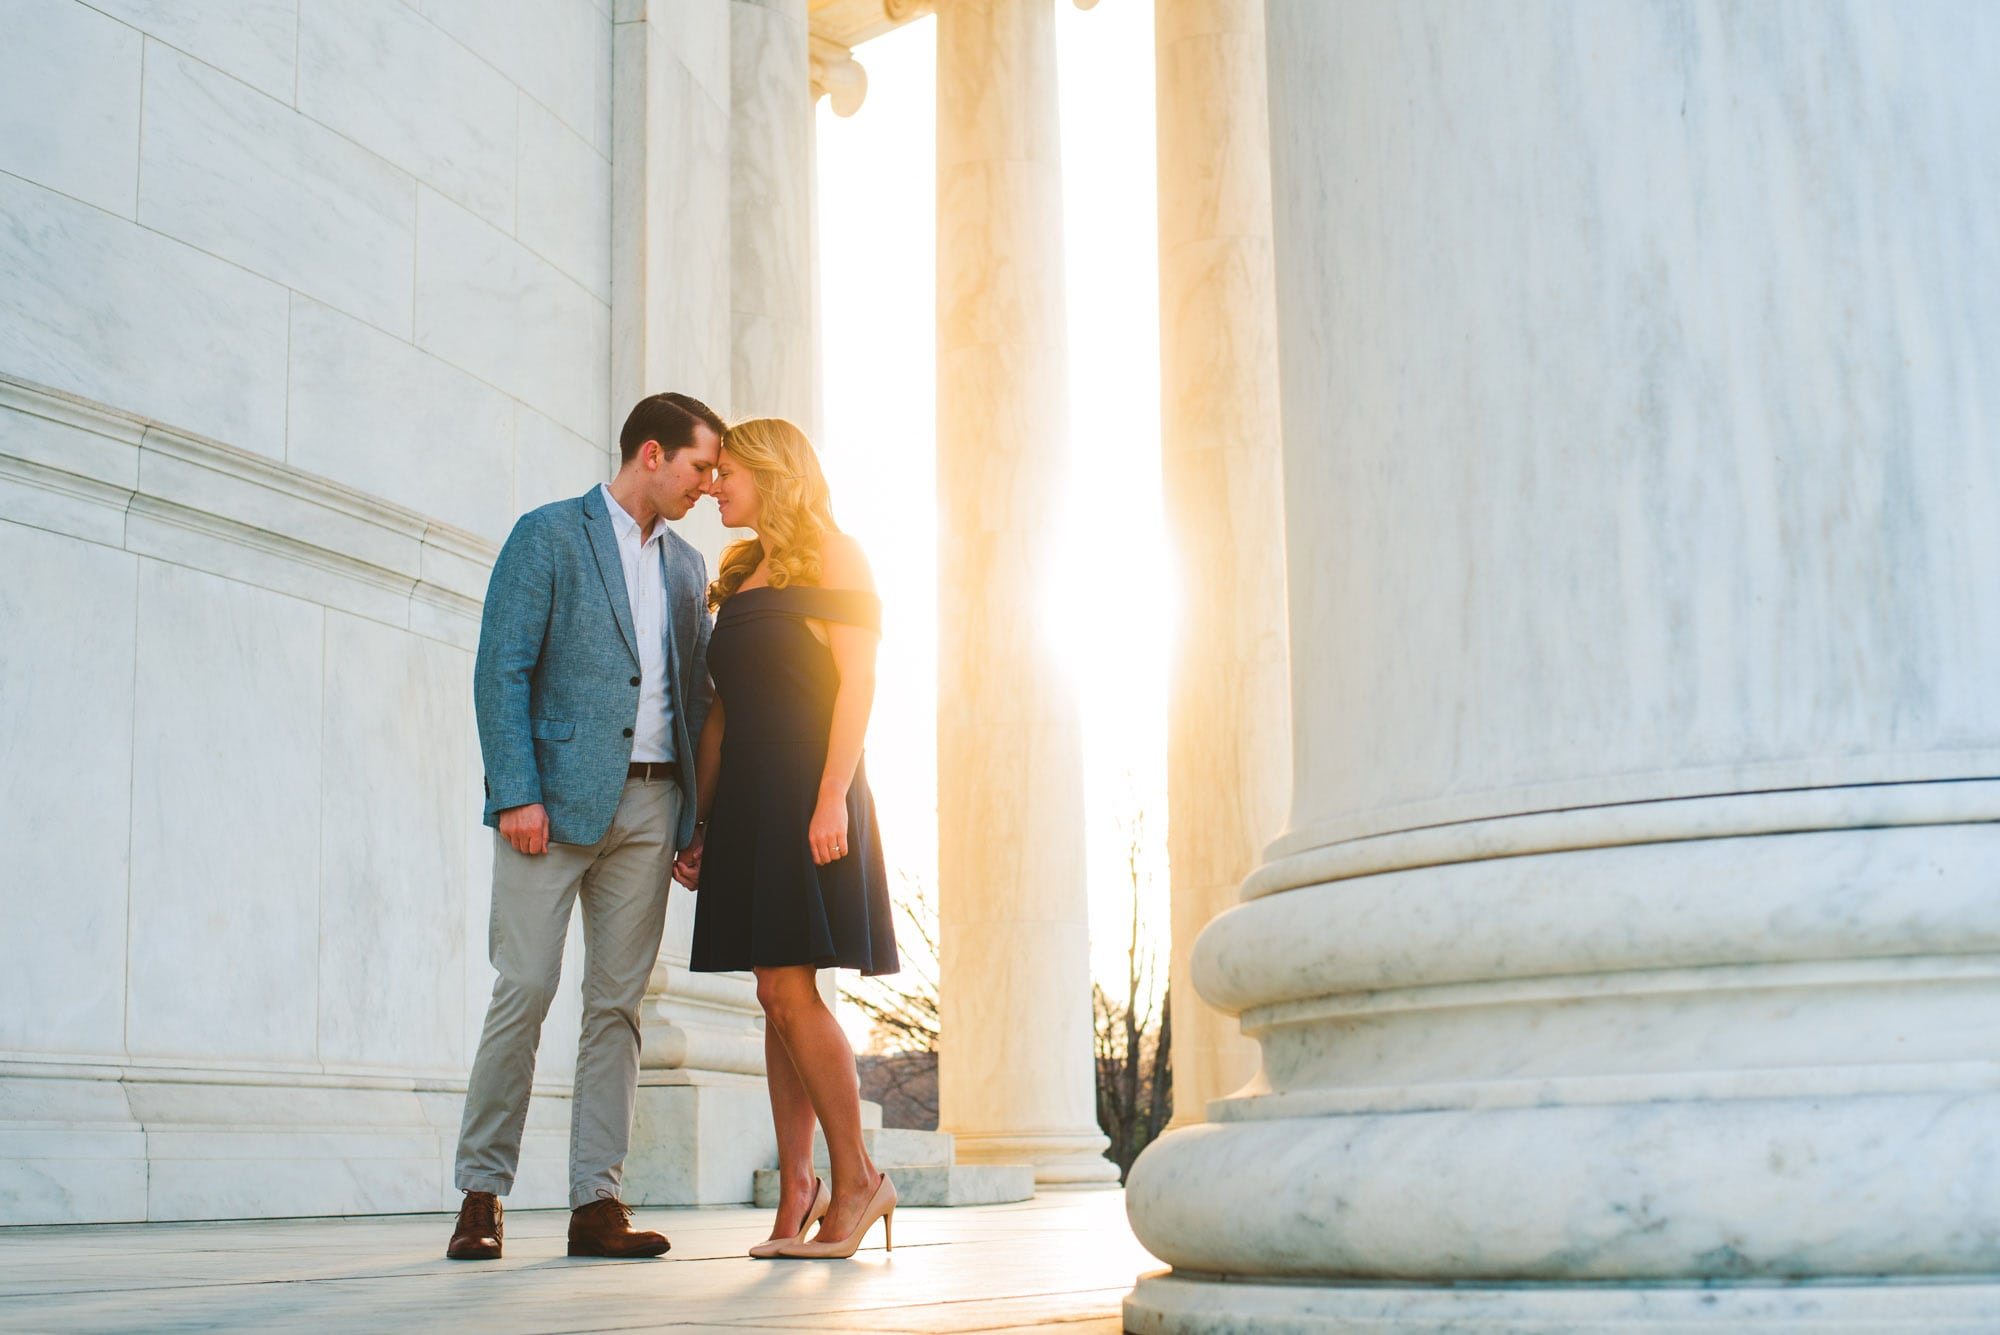 Sun peeking through the pillars at Jefferson Memorial during an engagement session.